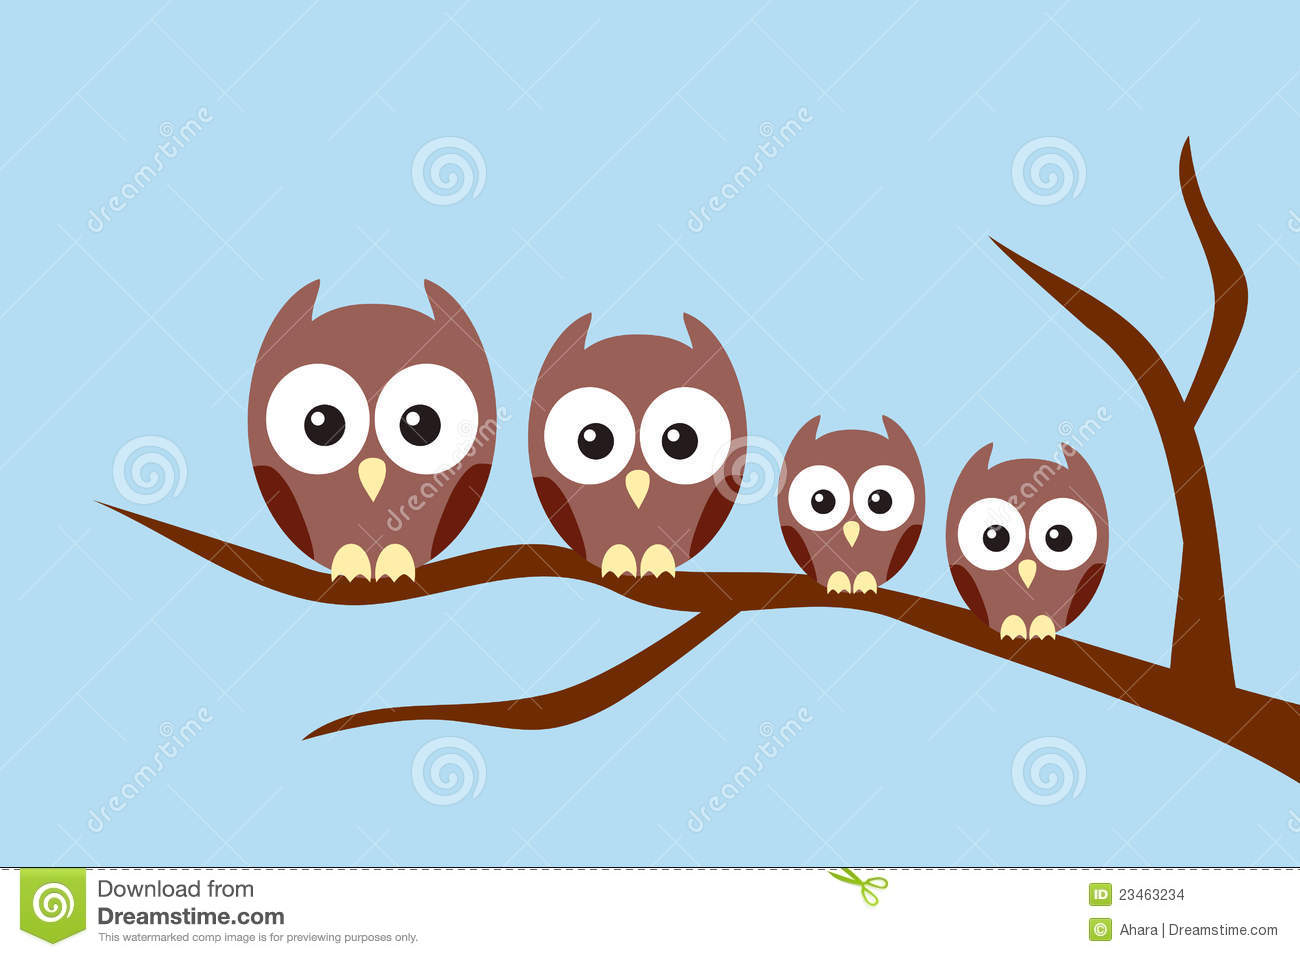 Cute Baby Couple Wallpaper For Desktop Owl Family Stock Images Image 23463234